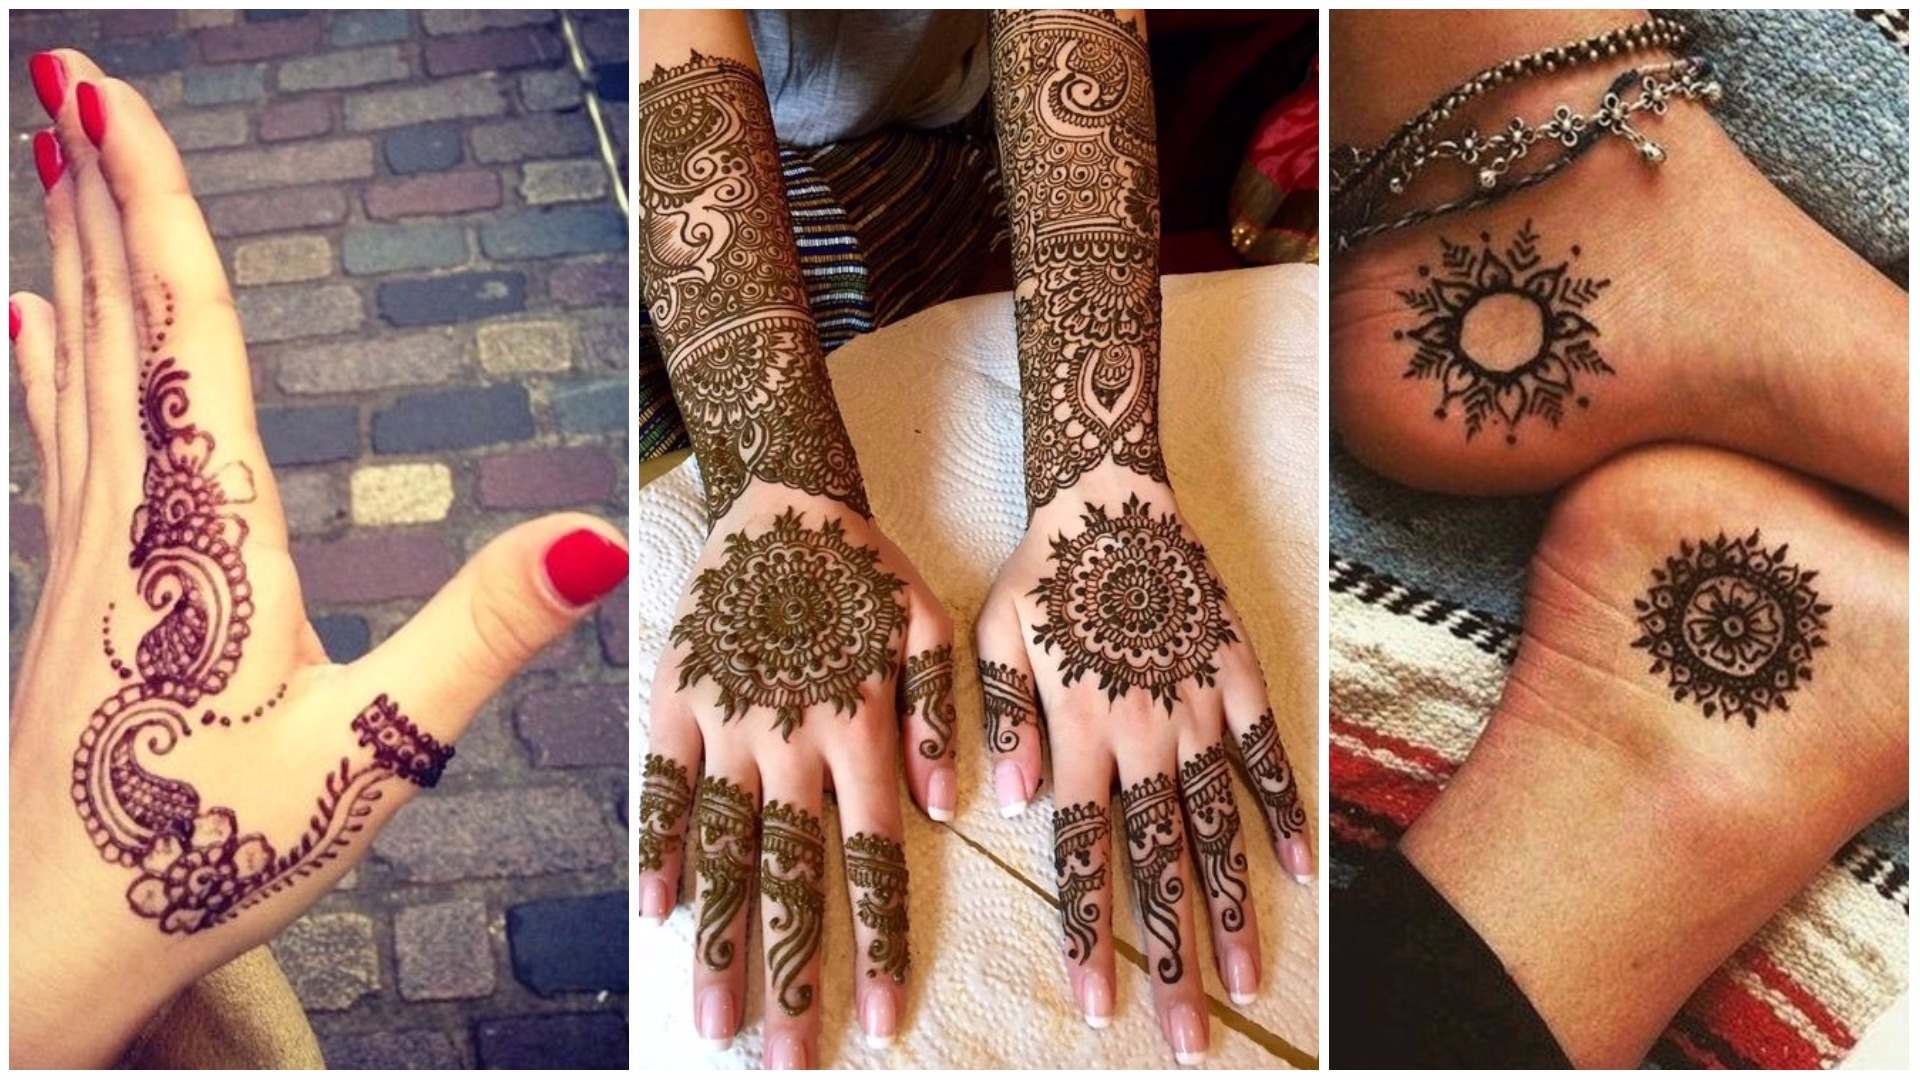 Mehndi Designs Very Beautiful : Beautiful mehndi designs henna hand art